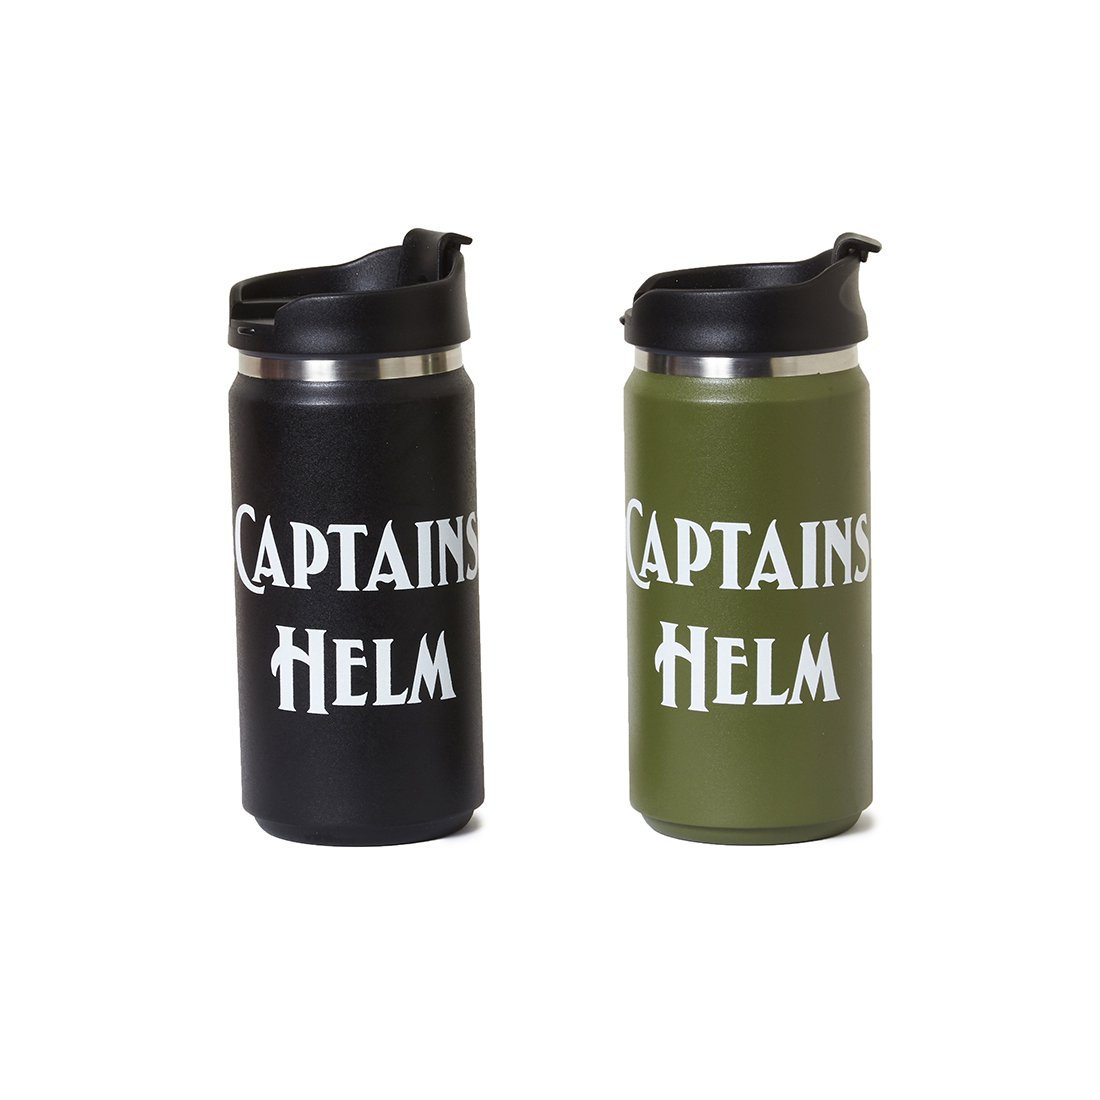 CAPTAINS HELM #THERMO STRAIGHT TUMBLER